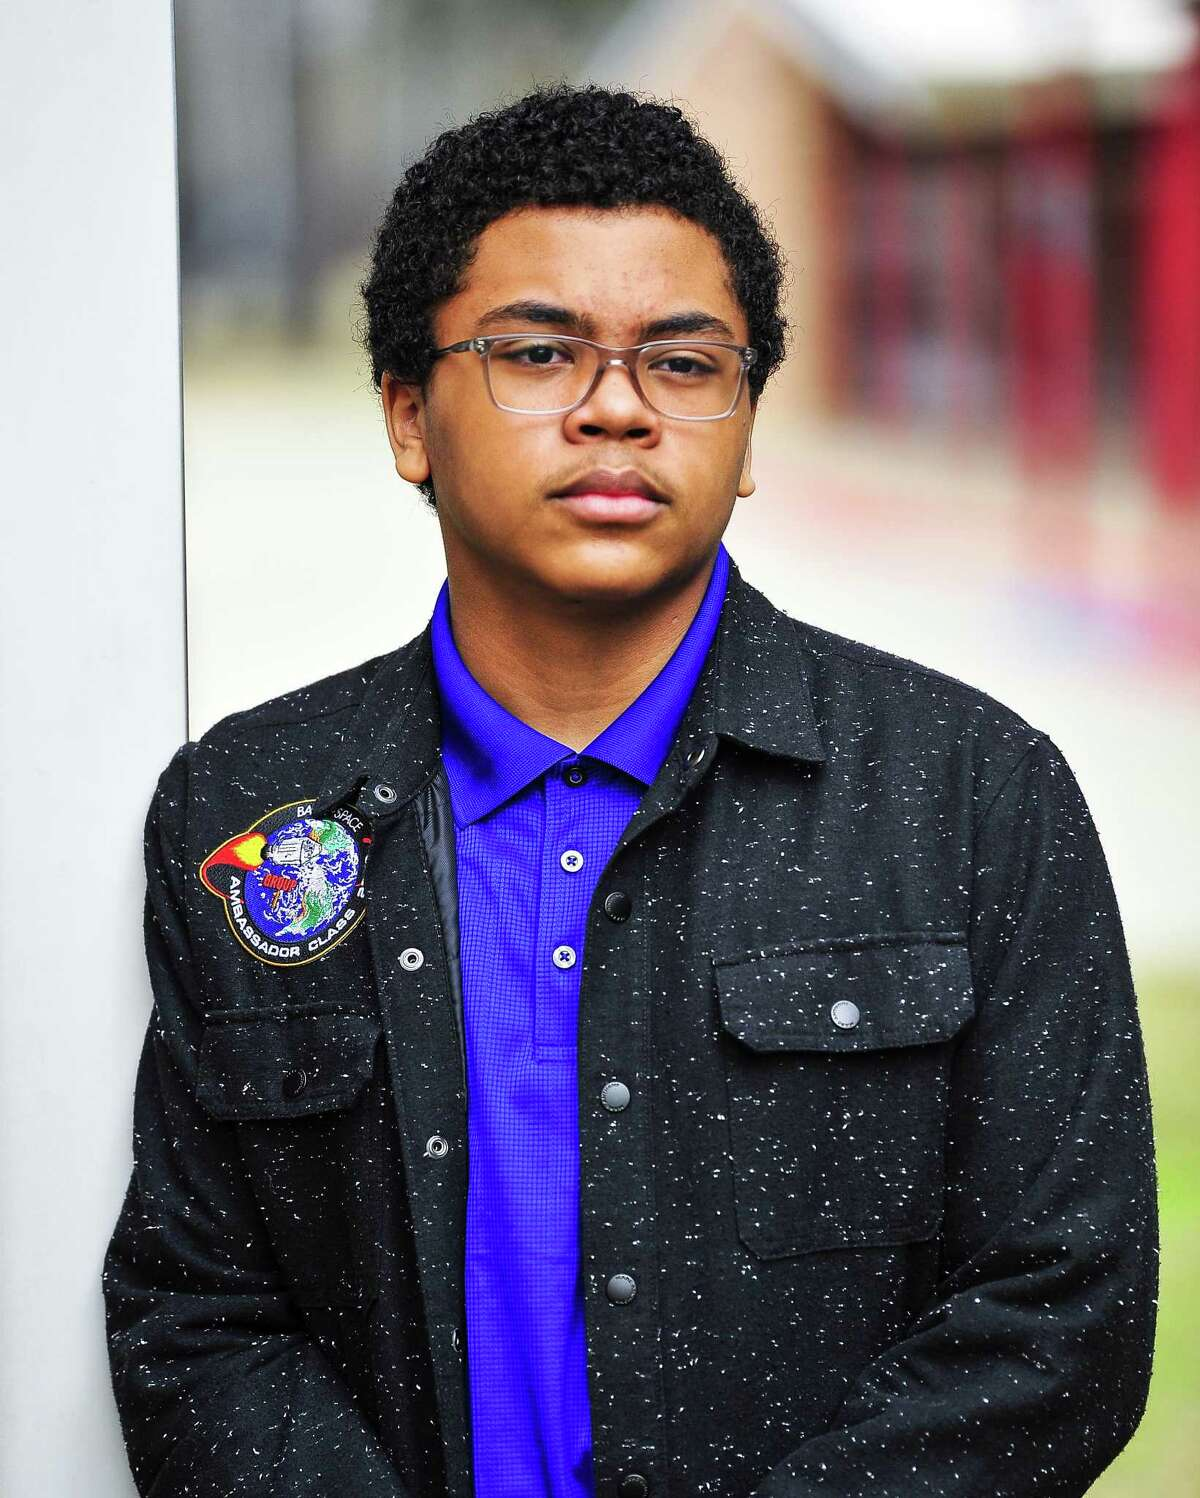 Gavin Syas, an eighth-grader at Marshall Middle School, poses for a photo on Wednesday after giving a presentation to his fellow students about the importance of STEM in schools. Syas is one of 25 ambassadors for the Back to Space program which aims to make STEM a focus in pop culture. Photo taken Wednesday 01/16/19.